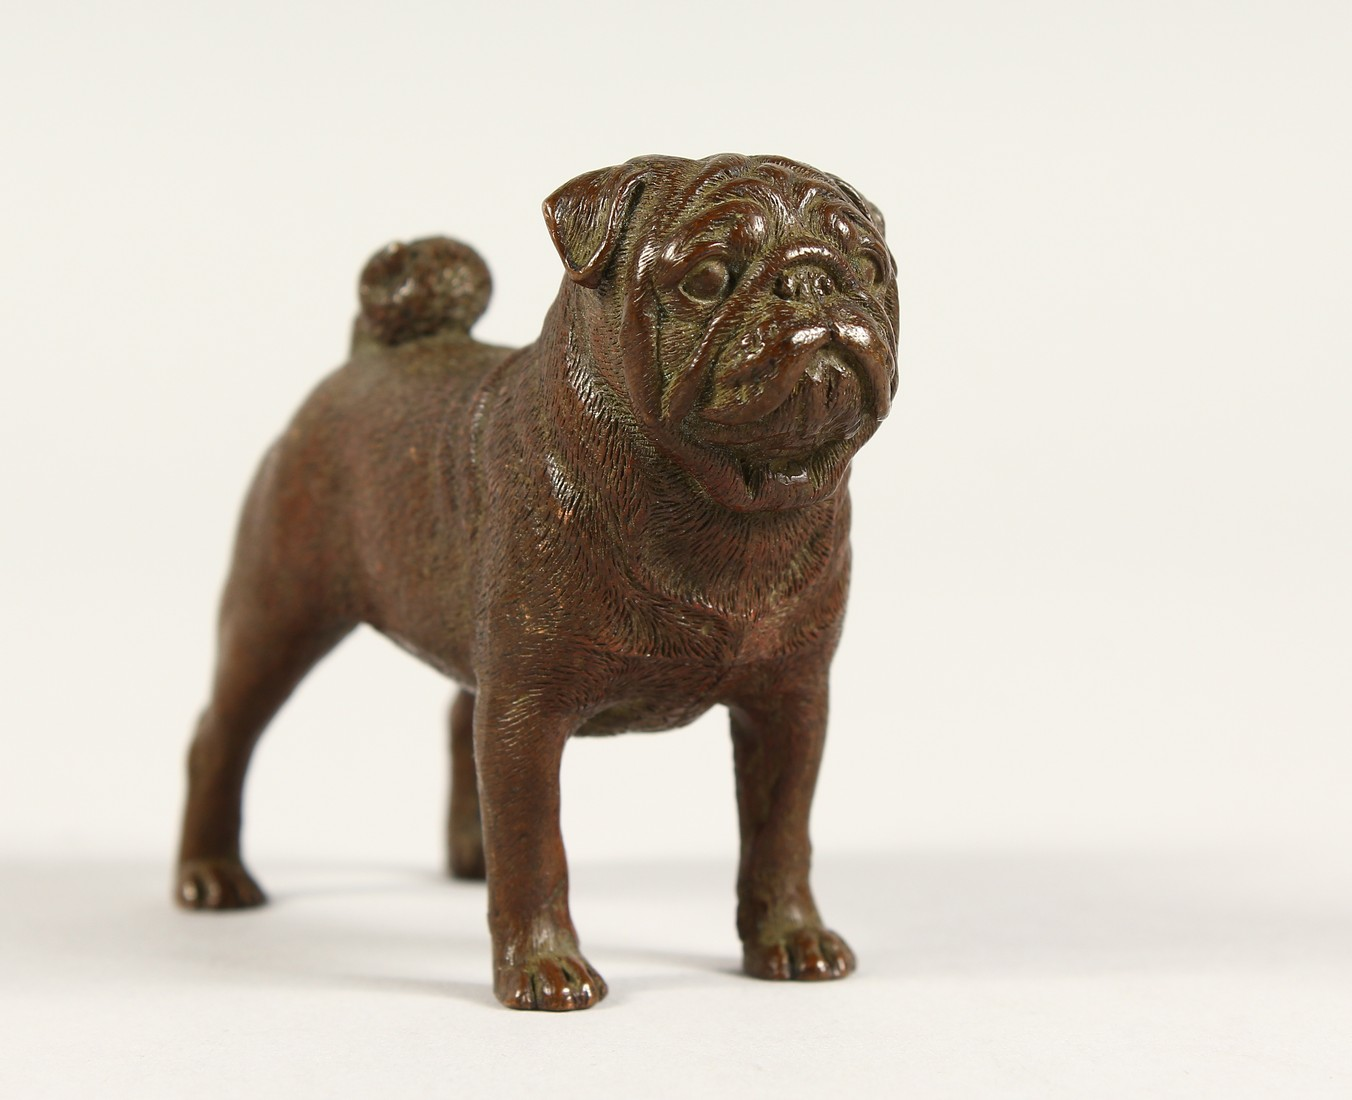 A SMALL HEAVY BRONZE PUG DOG 3ins long